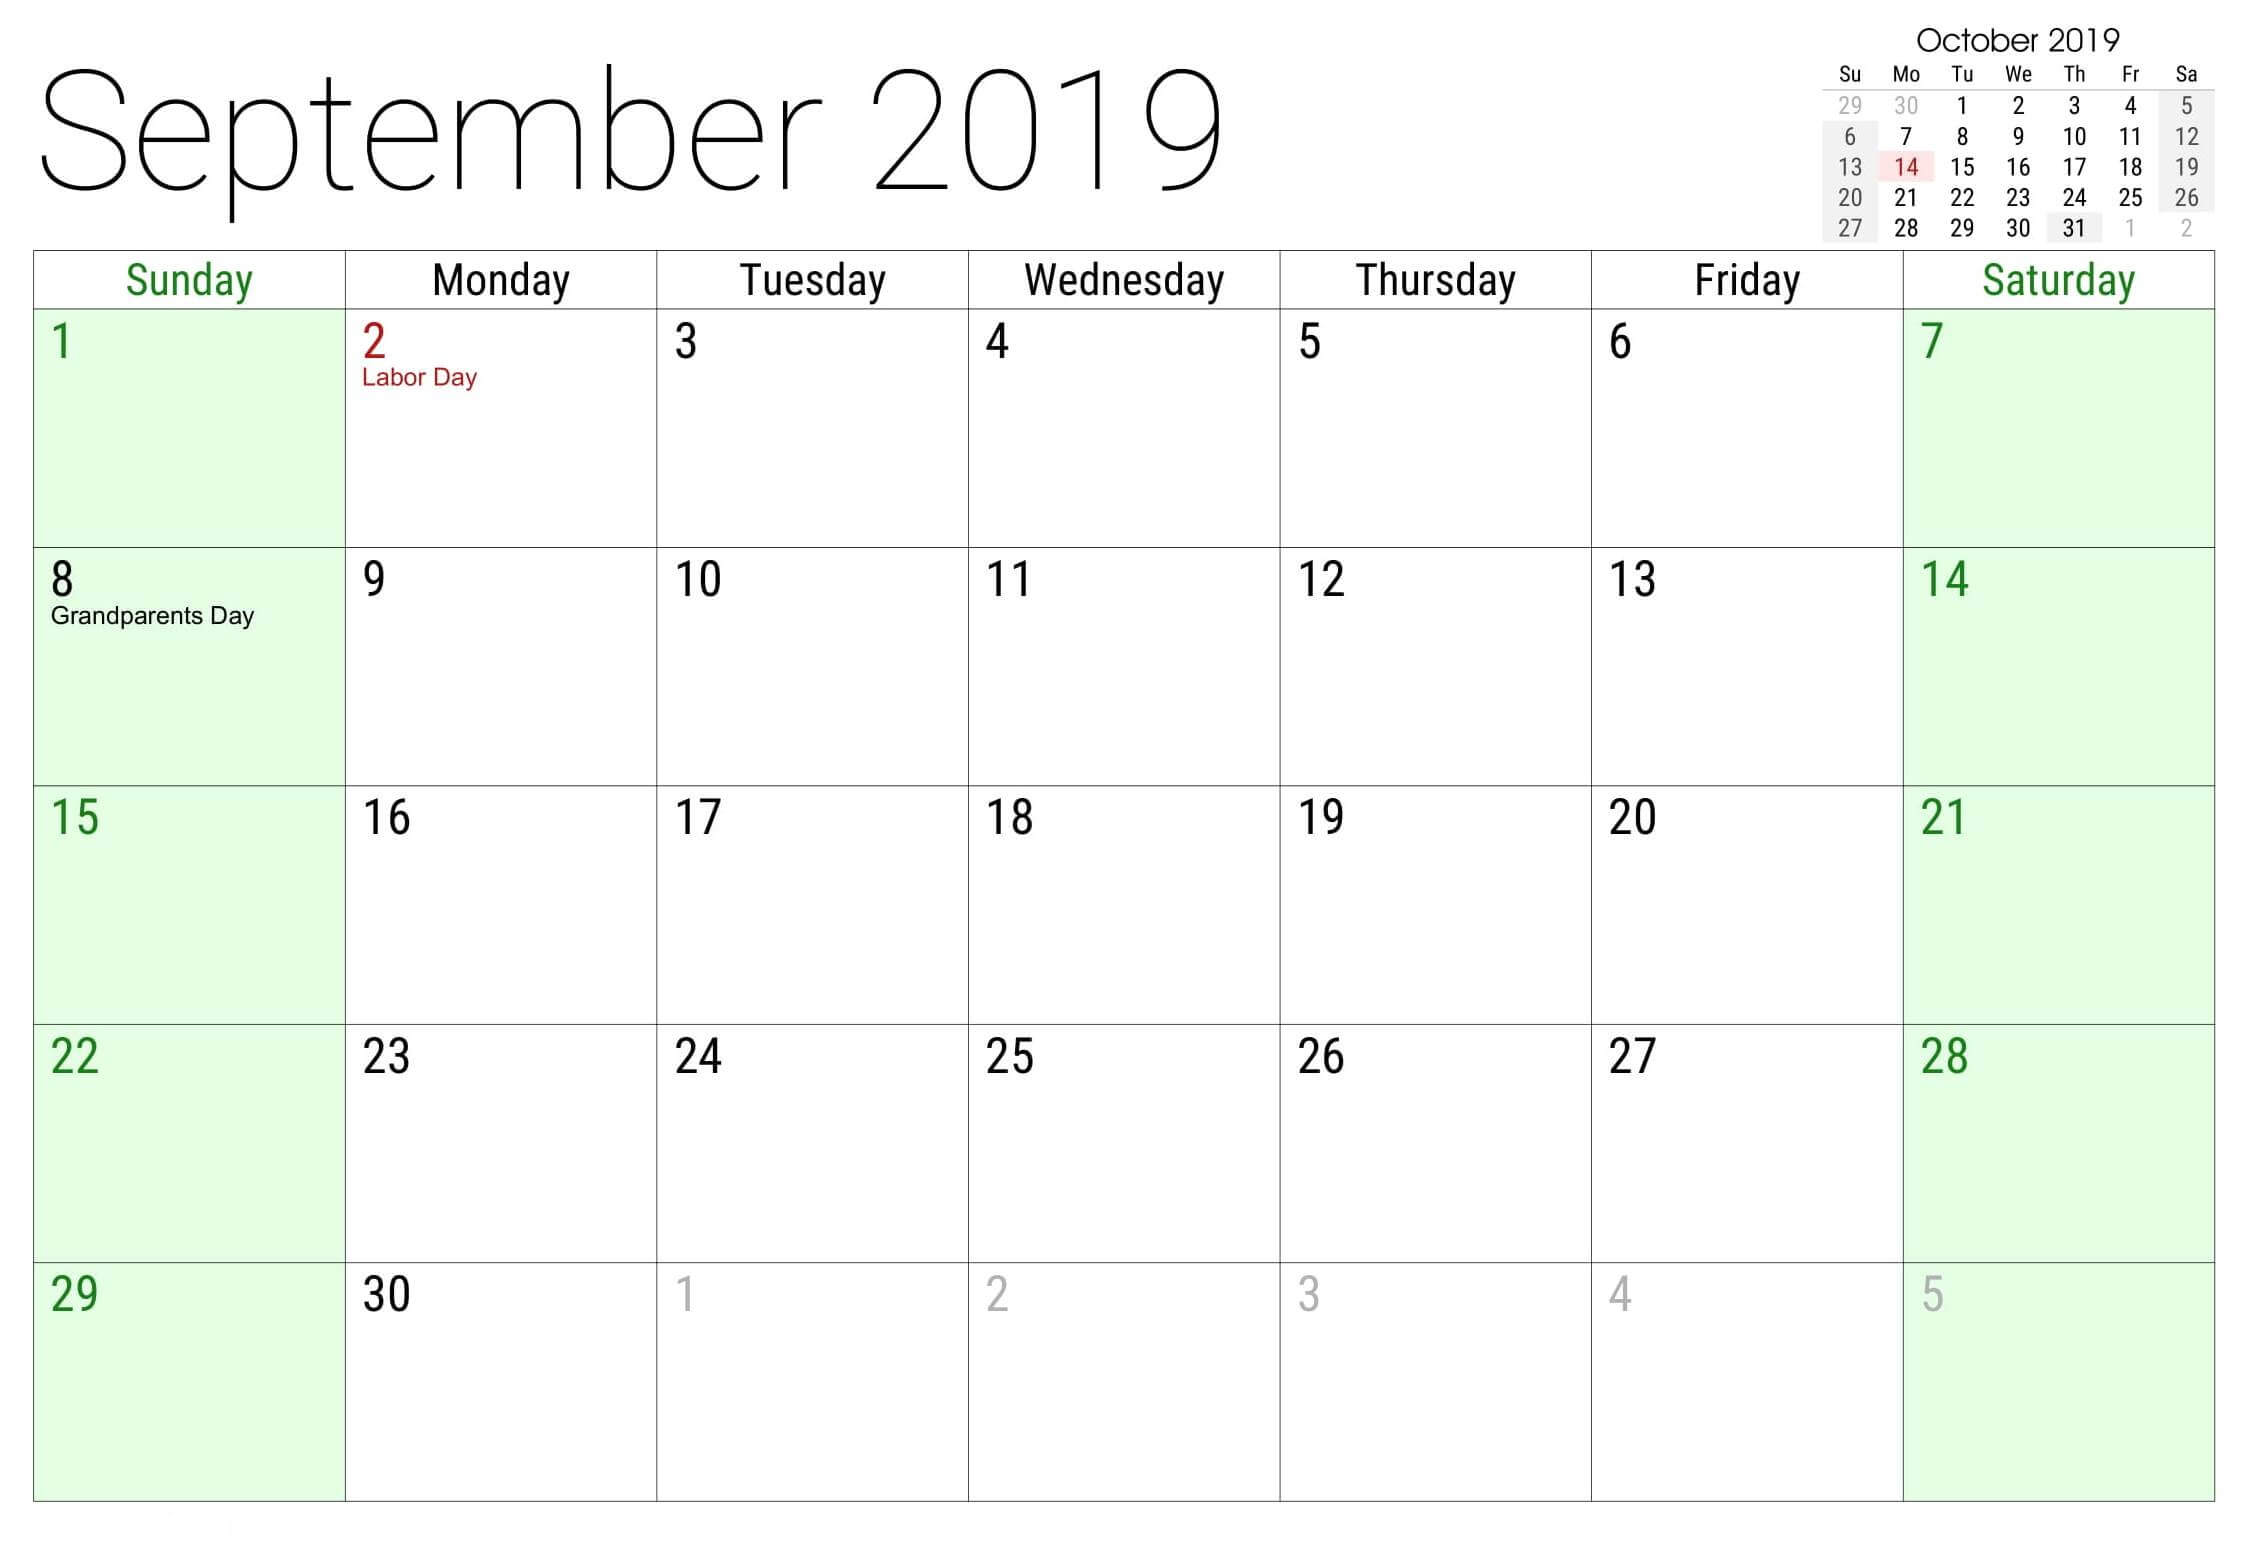 September 2019 Calendar with Holidays Printable